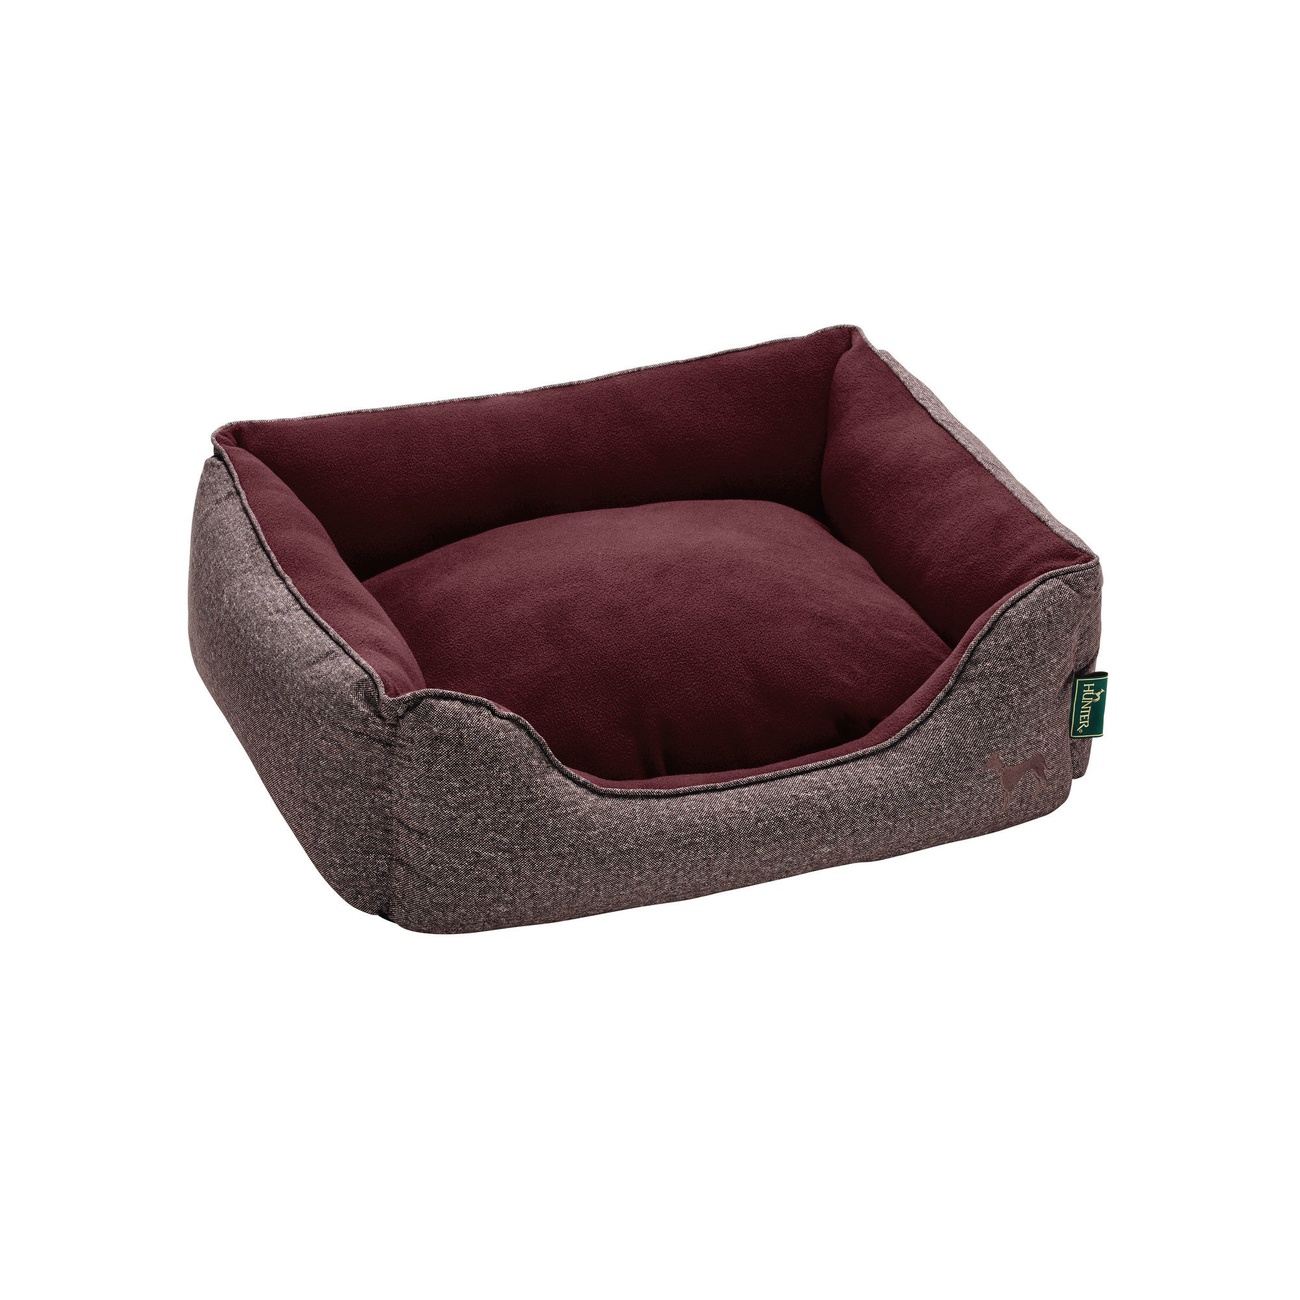 Hunter Hundebett Boston Cozy, 60x50 cm, rot